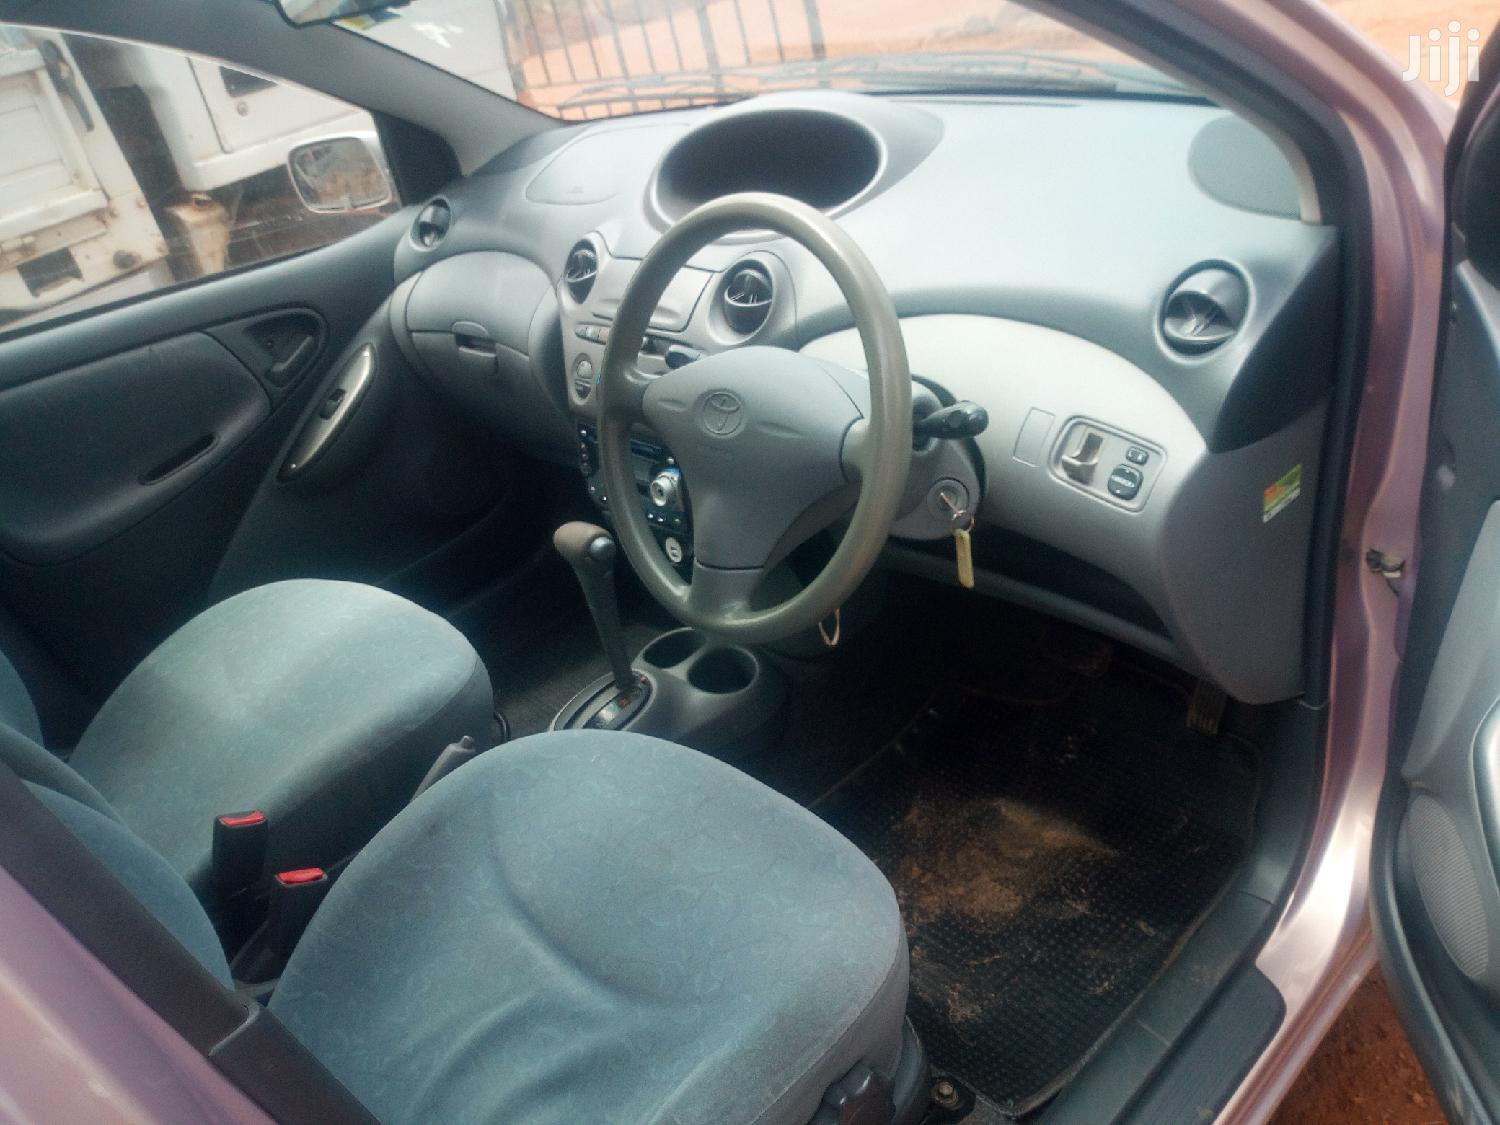 Toyota Vitz 2000 | Cars for sale in Kampala, Central Region, Uganda